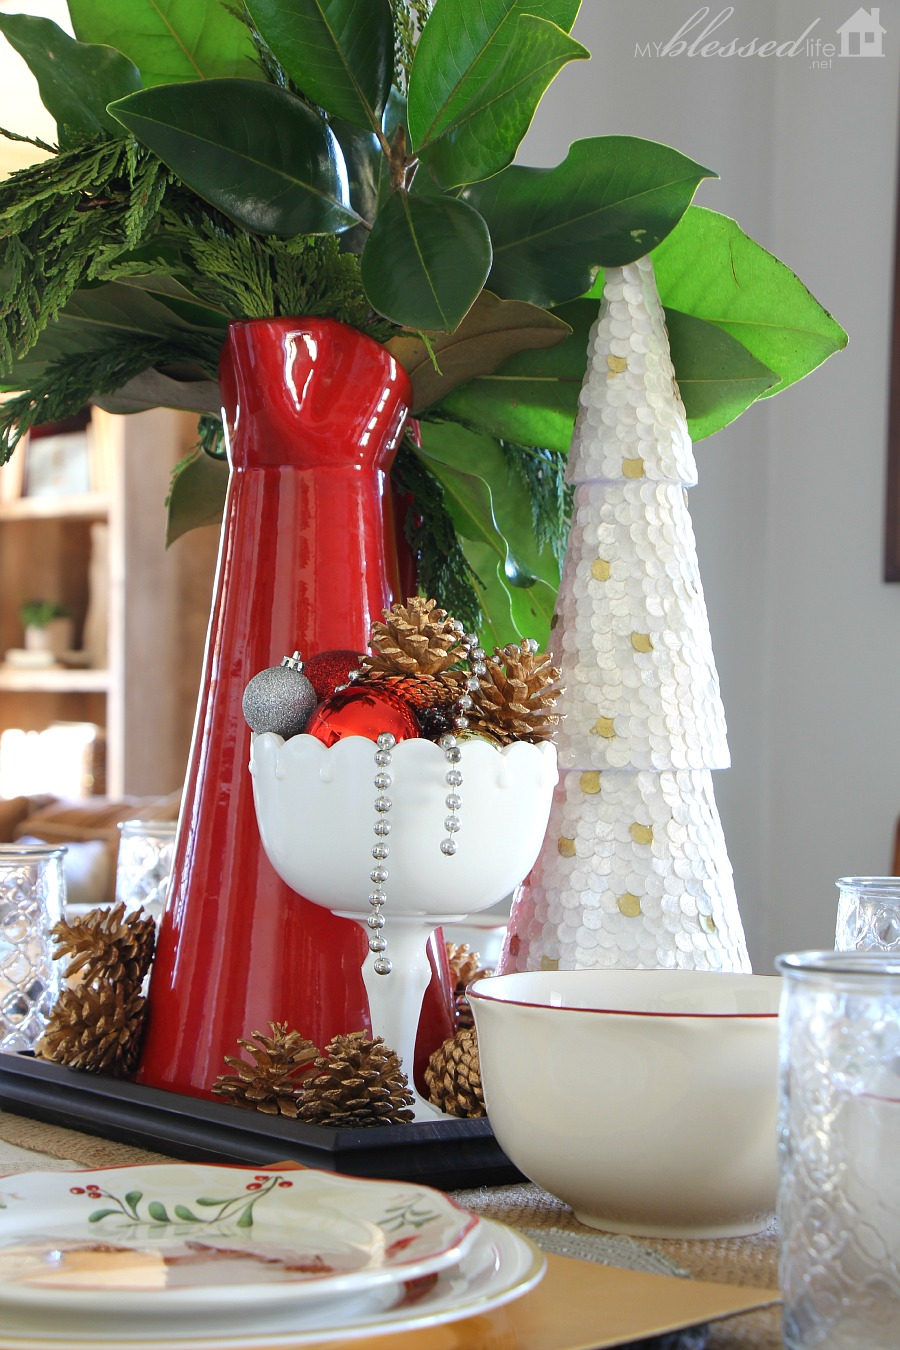 Simple Christmas Centerpiece {and Easy Holiday Gift Idea!}